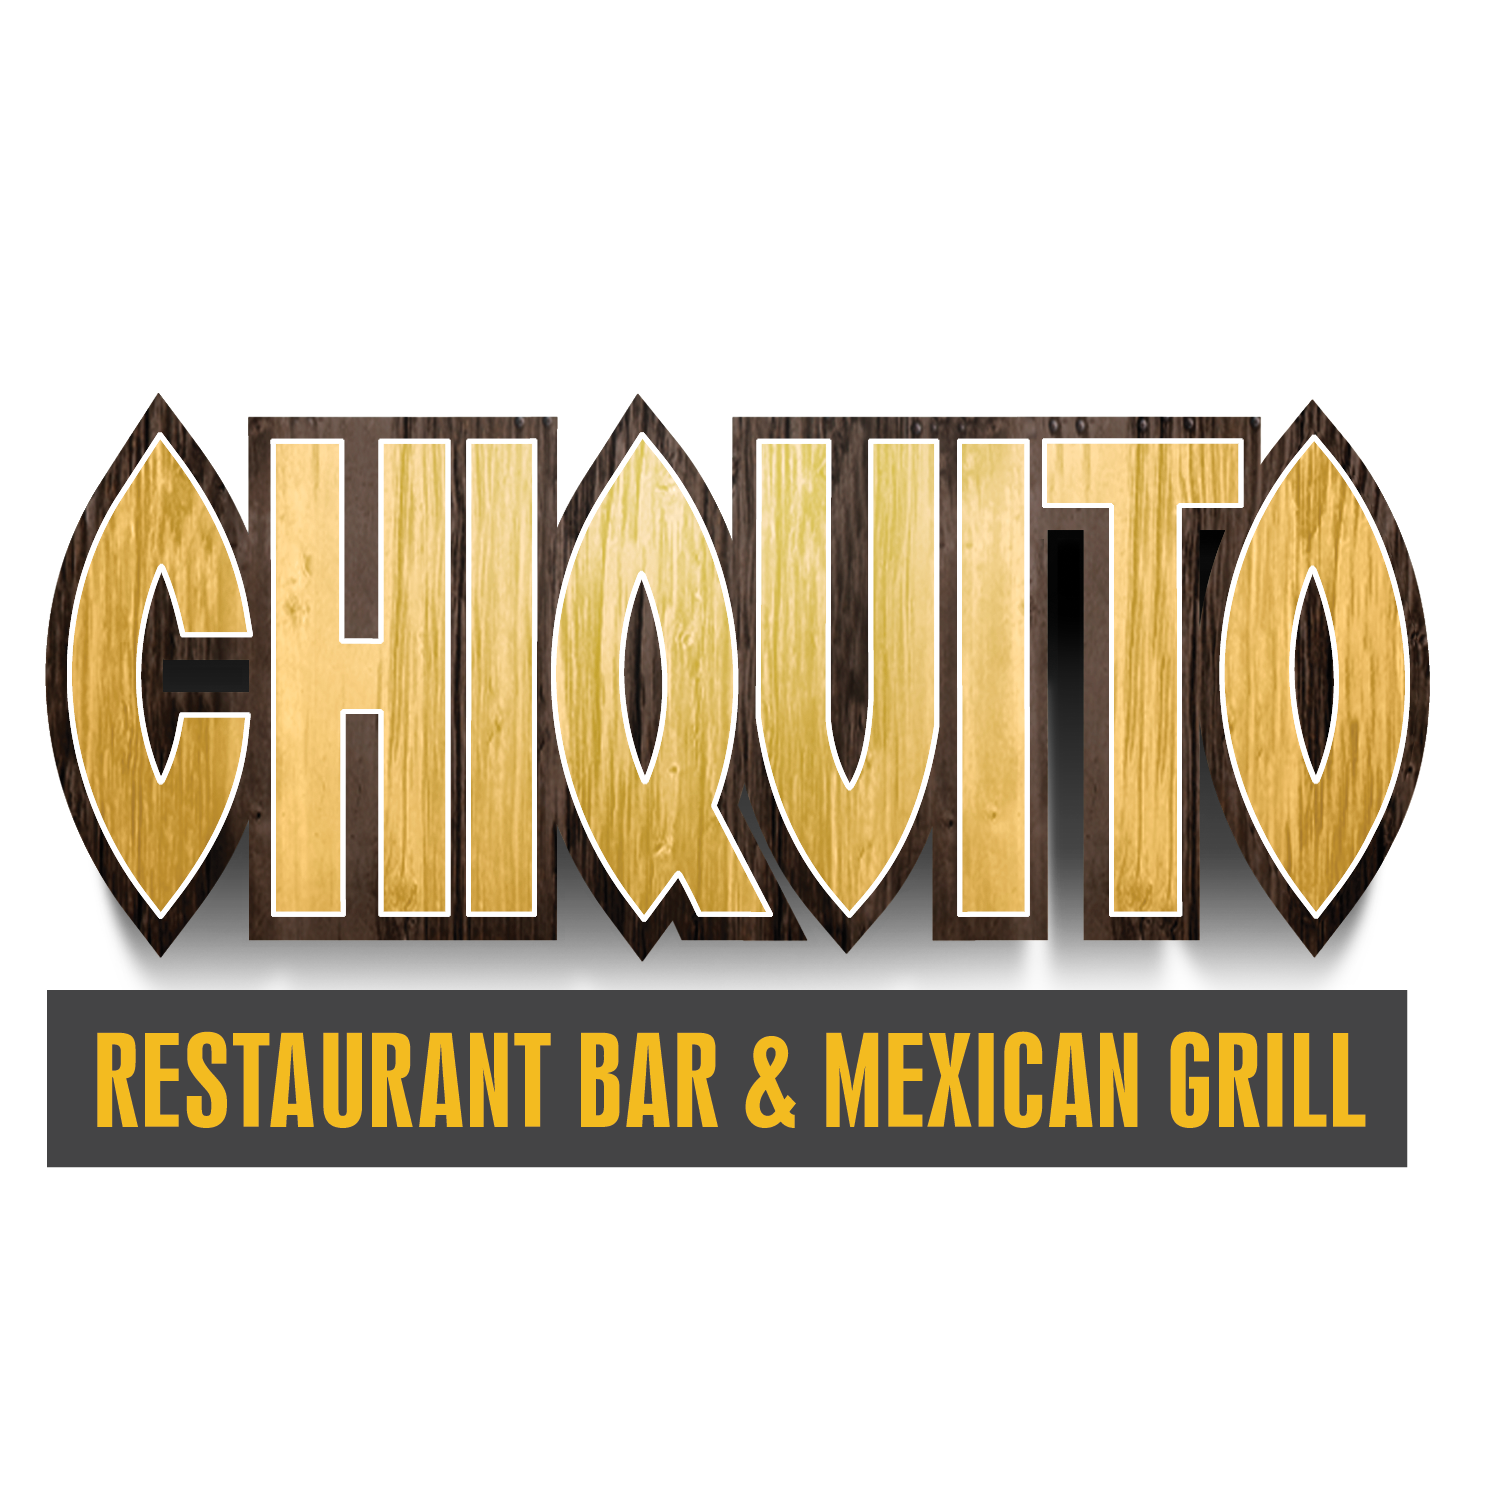 Chiquito - Peterborough, Cambridgeshire PE7 8FD - 01733 898540 | ShowMeLocal.com